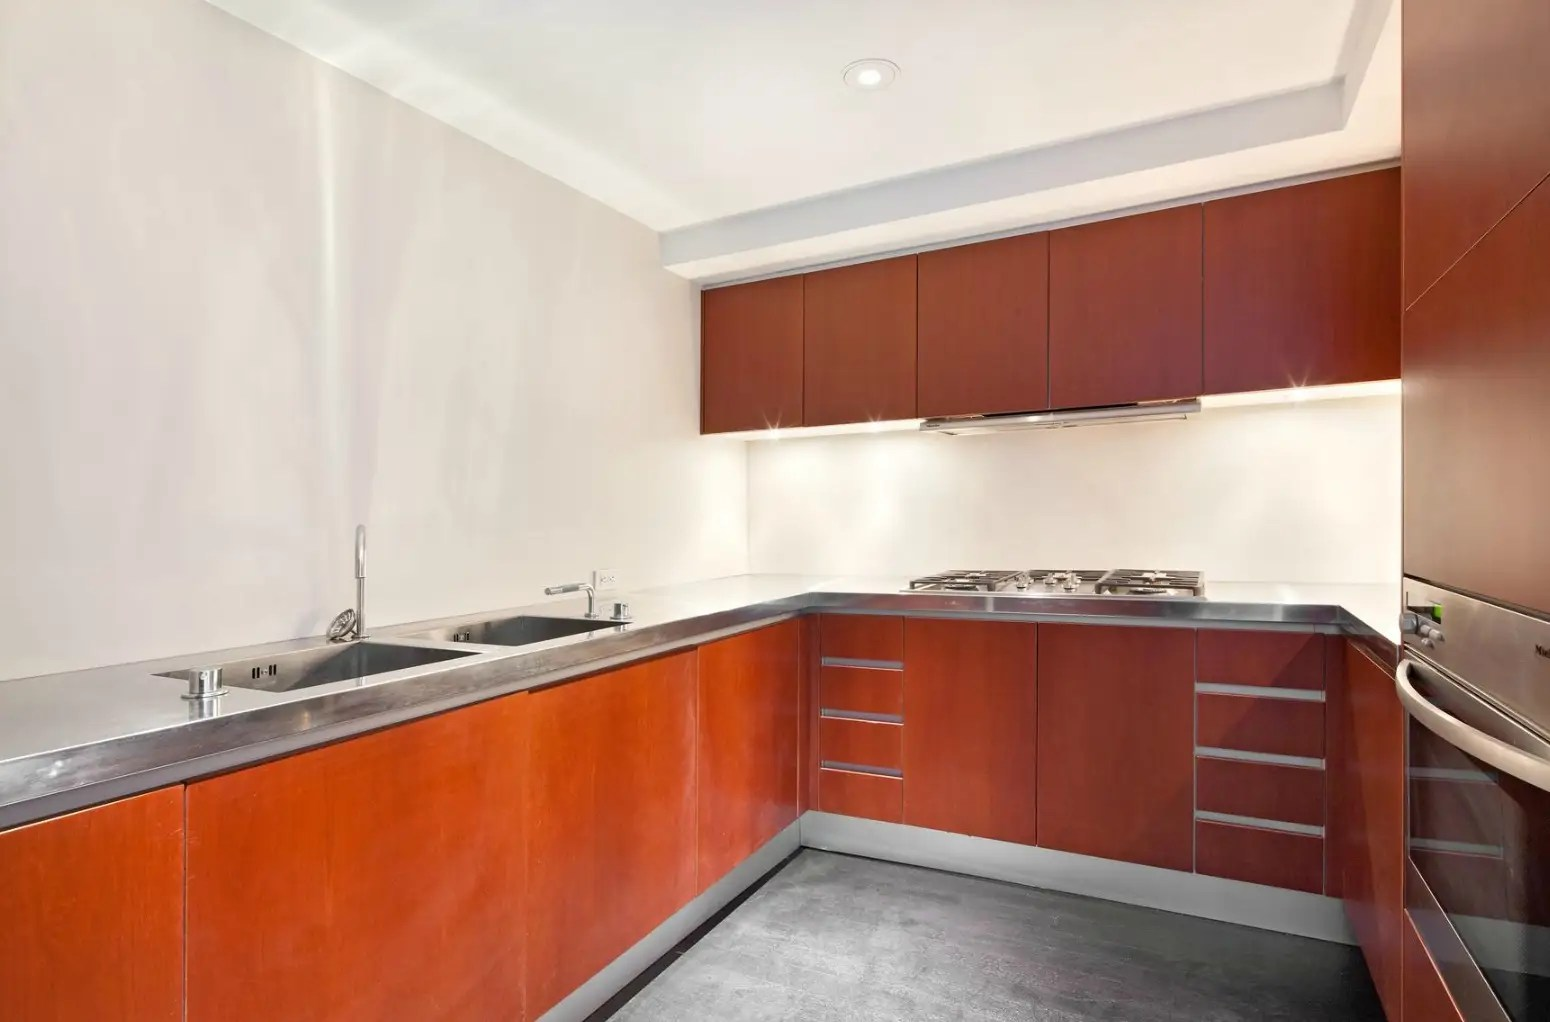 Stainless Steel Cabinets And Countertops Karl Lagerfeld Sells Gramercy Park Apartment Business